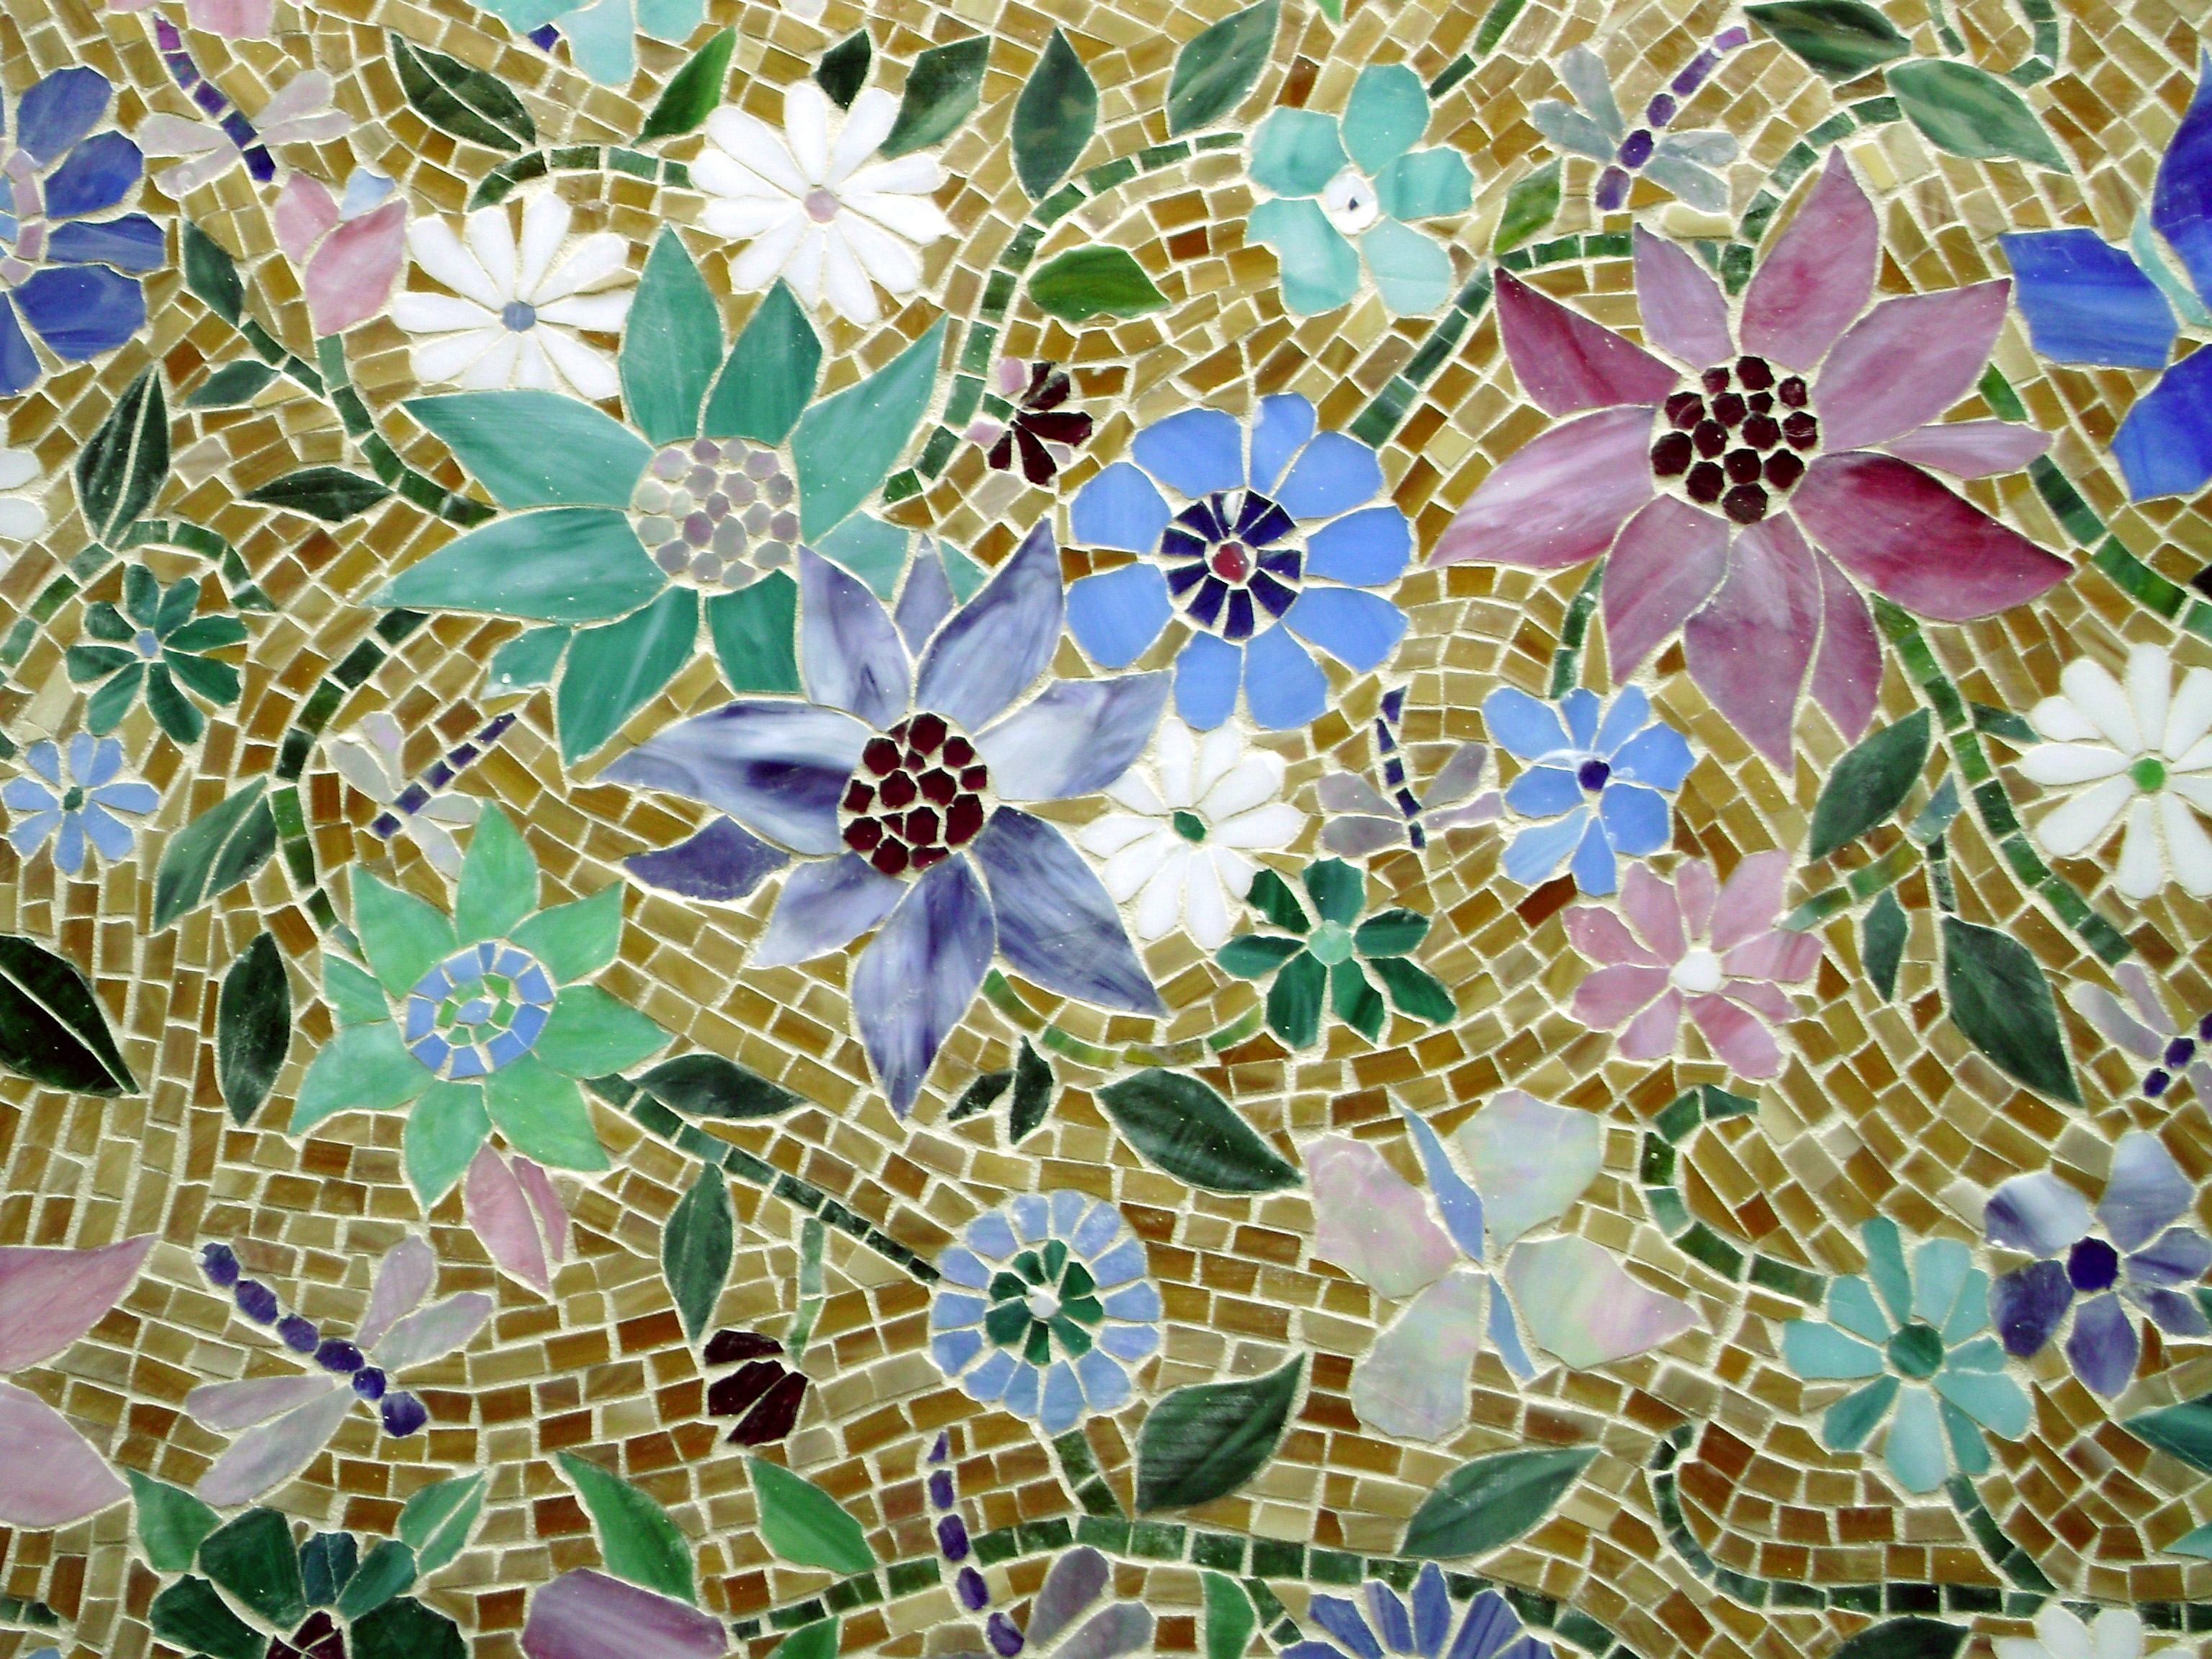 Tuscan Fireplace Floral Mosaic Kitchen Backsplash | Designer Glass Mosaics